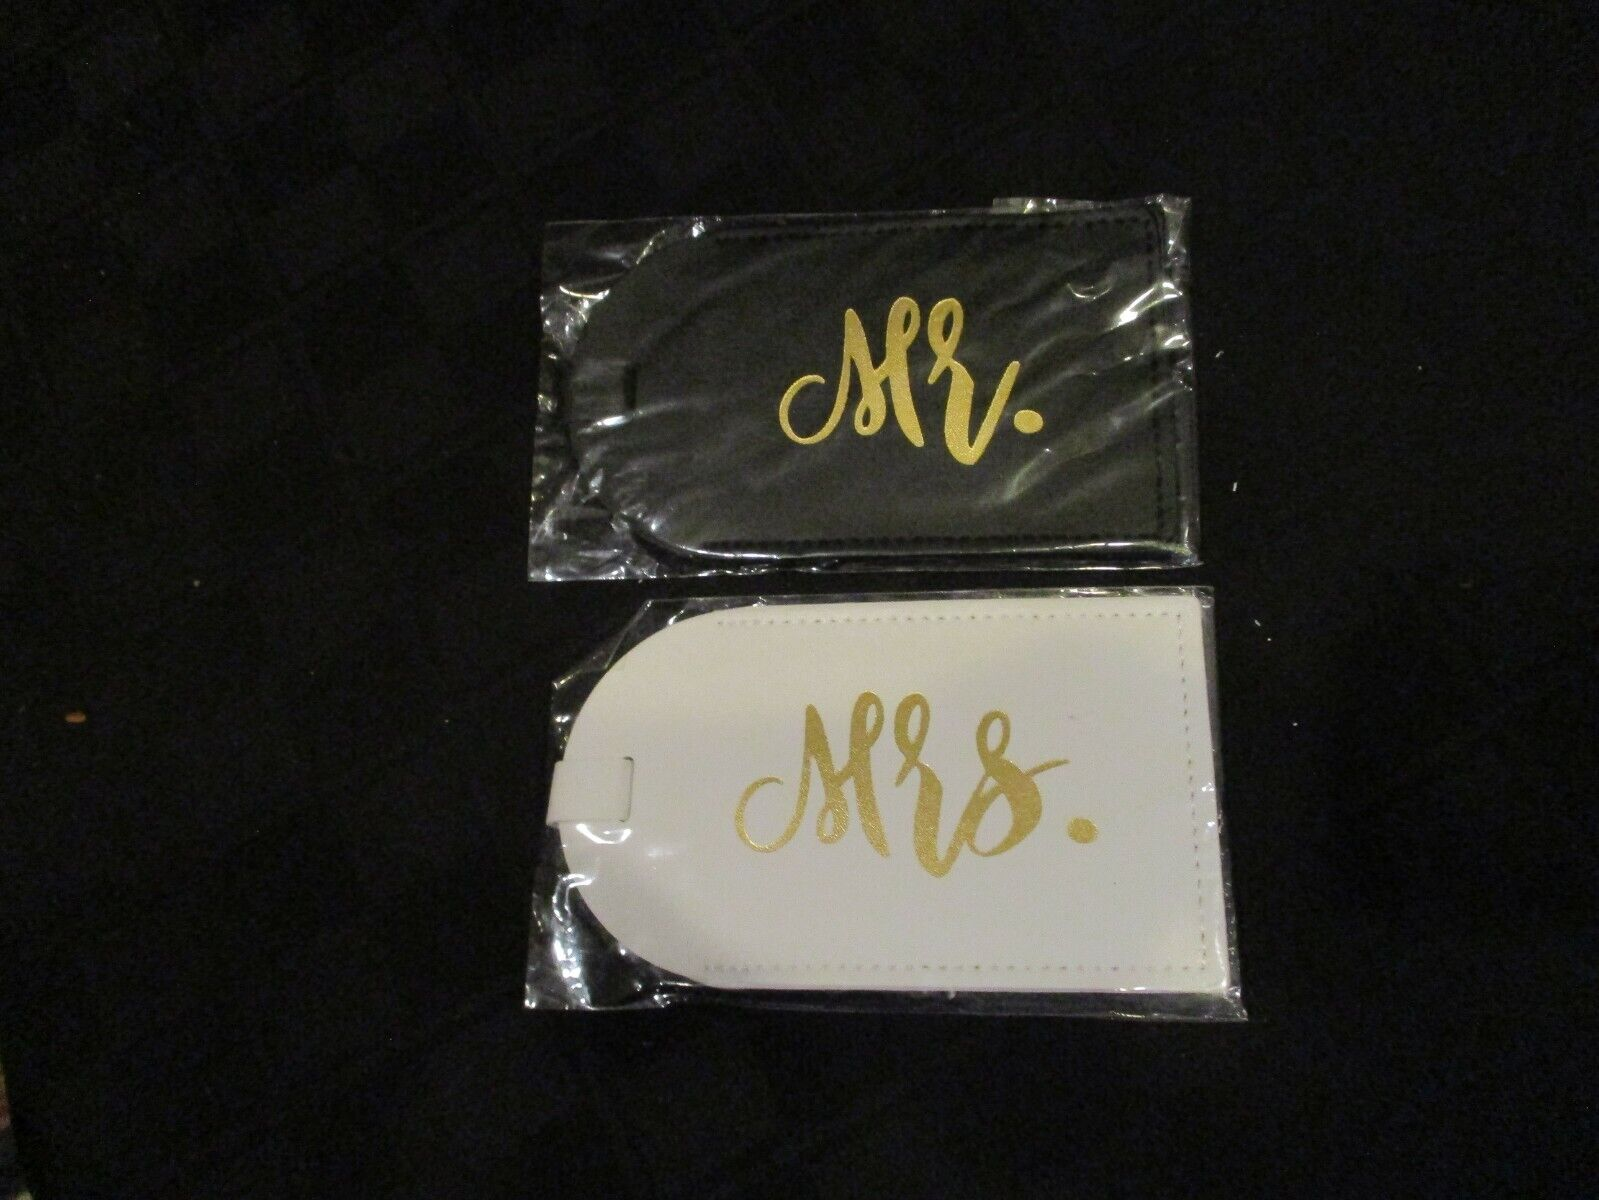 MR MRS Luggage Tags Leatherette Approx 5 X 2.75 Buckle Closure - $4.99